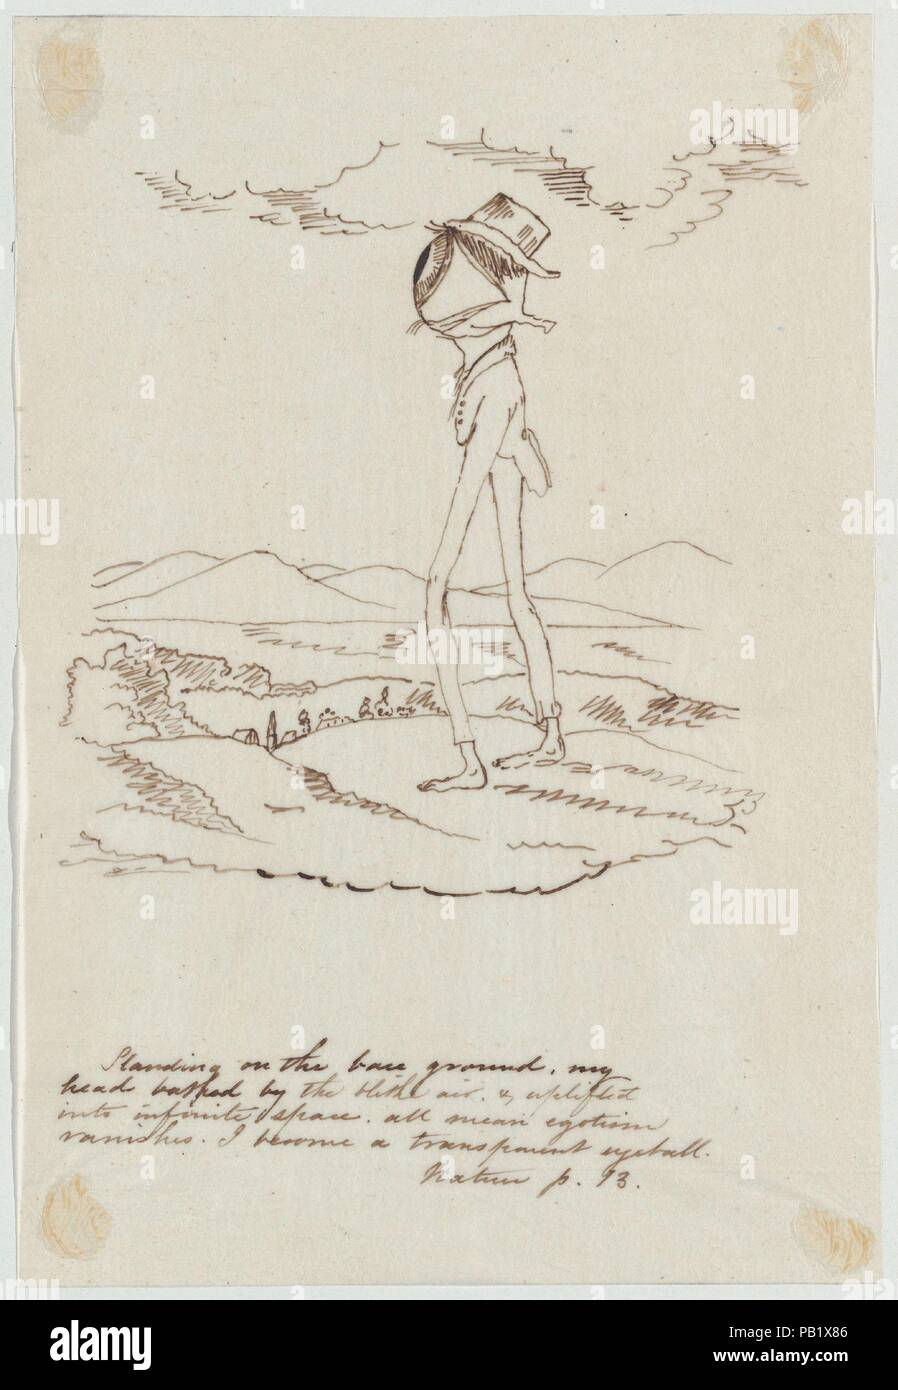 Standing on the Base Ground...I Become a Transparent Eyeball (Illustration for Ralph Waldo Emerson's 'Nature'). Artist: Christopher Pearse Cranch (American, Alexandria, Virginia 1813-1892 Boston, Massachusetts). Dimensions: sheet: 8 3/8 x 5 11/16 in. (21.3 x 14.4 cm). Date: 1830-92. Museum: Metropolitan Museum of Art, New York, USA. - Stock Image